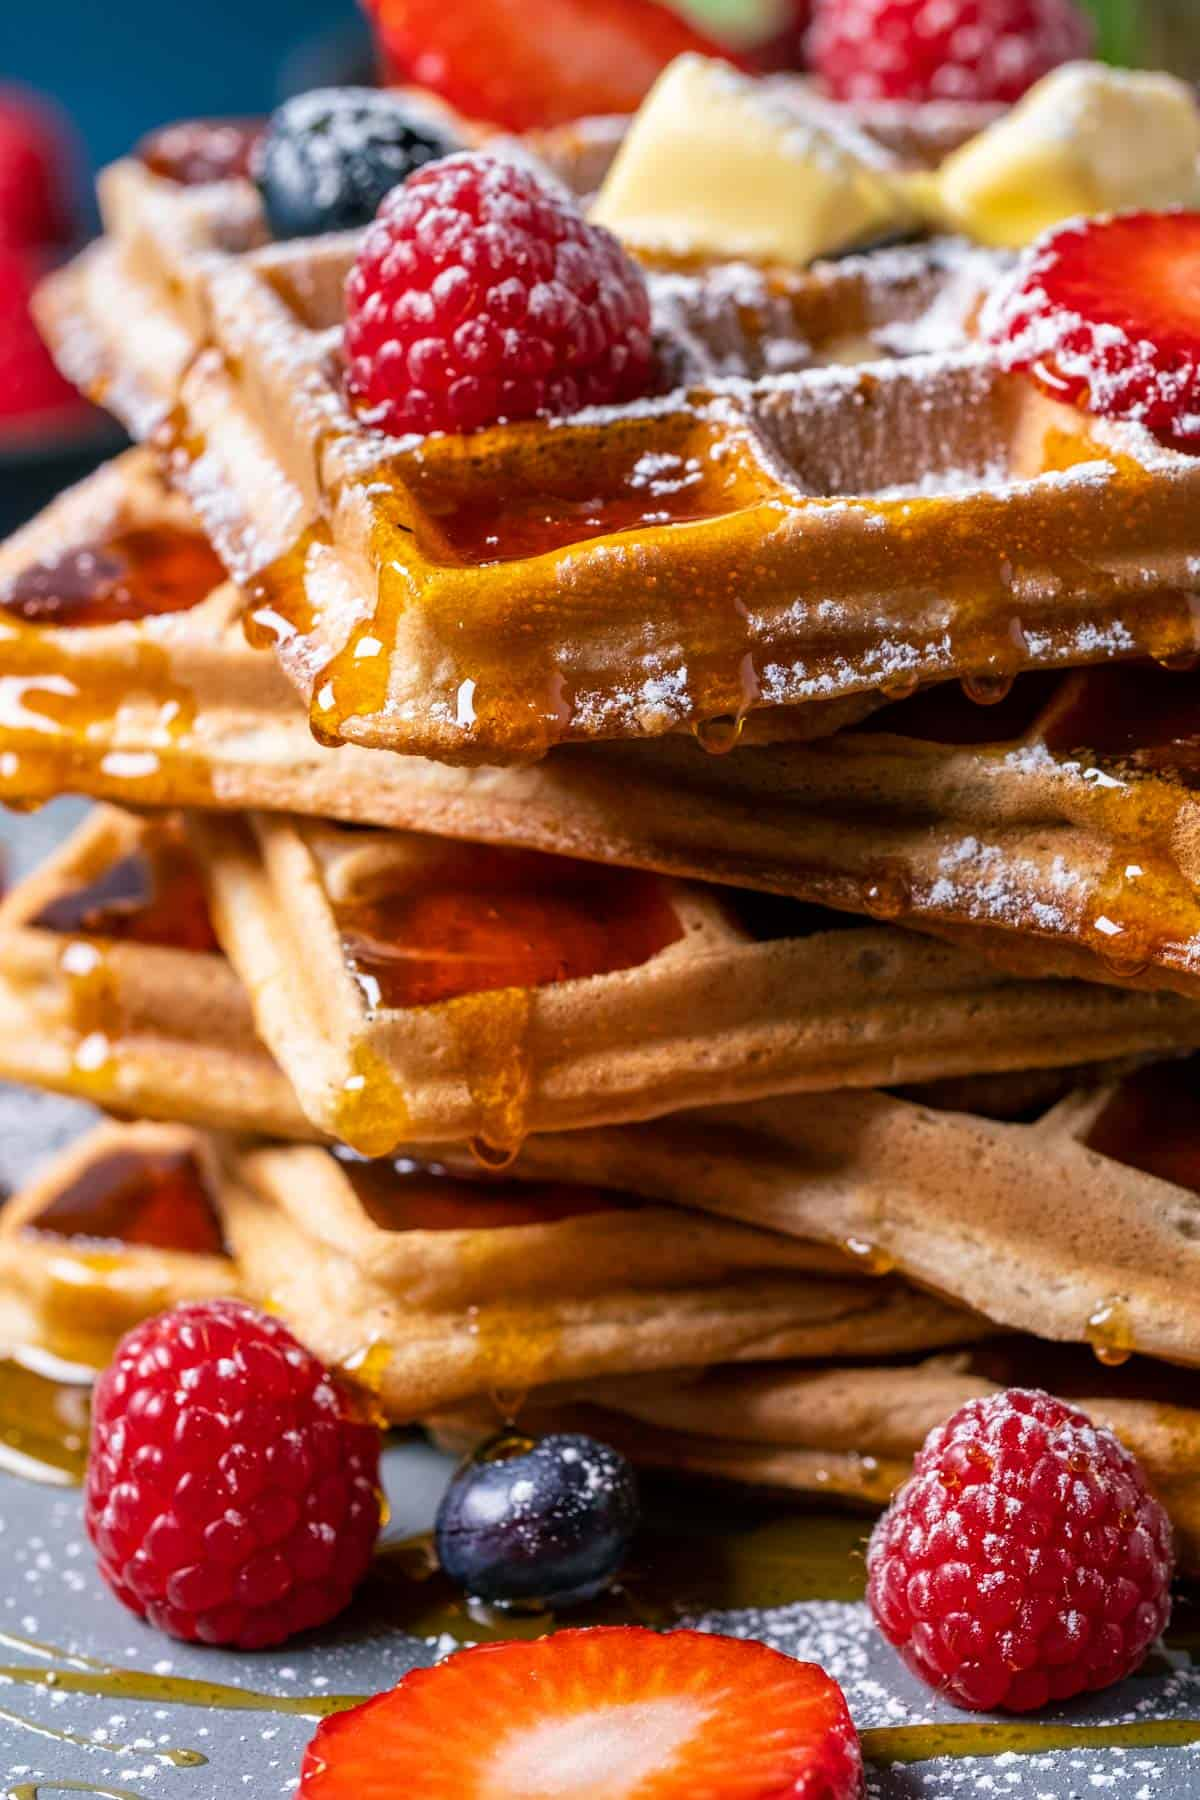 Stack of waffles topped with fresh berries, butter and powdered sugar.